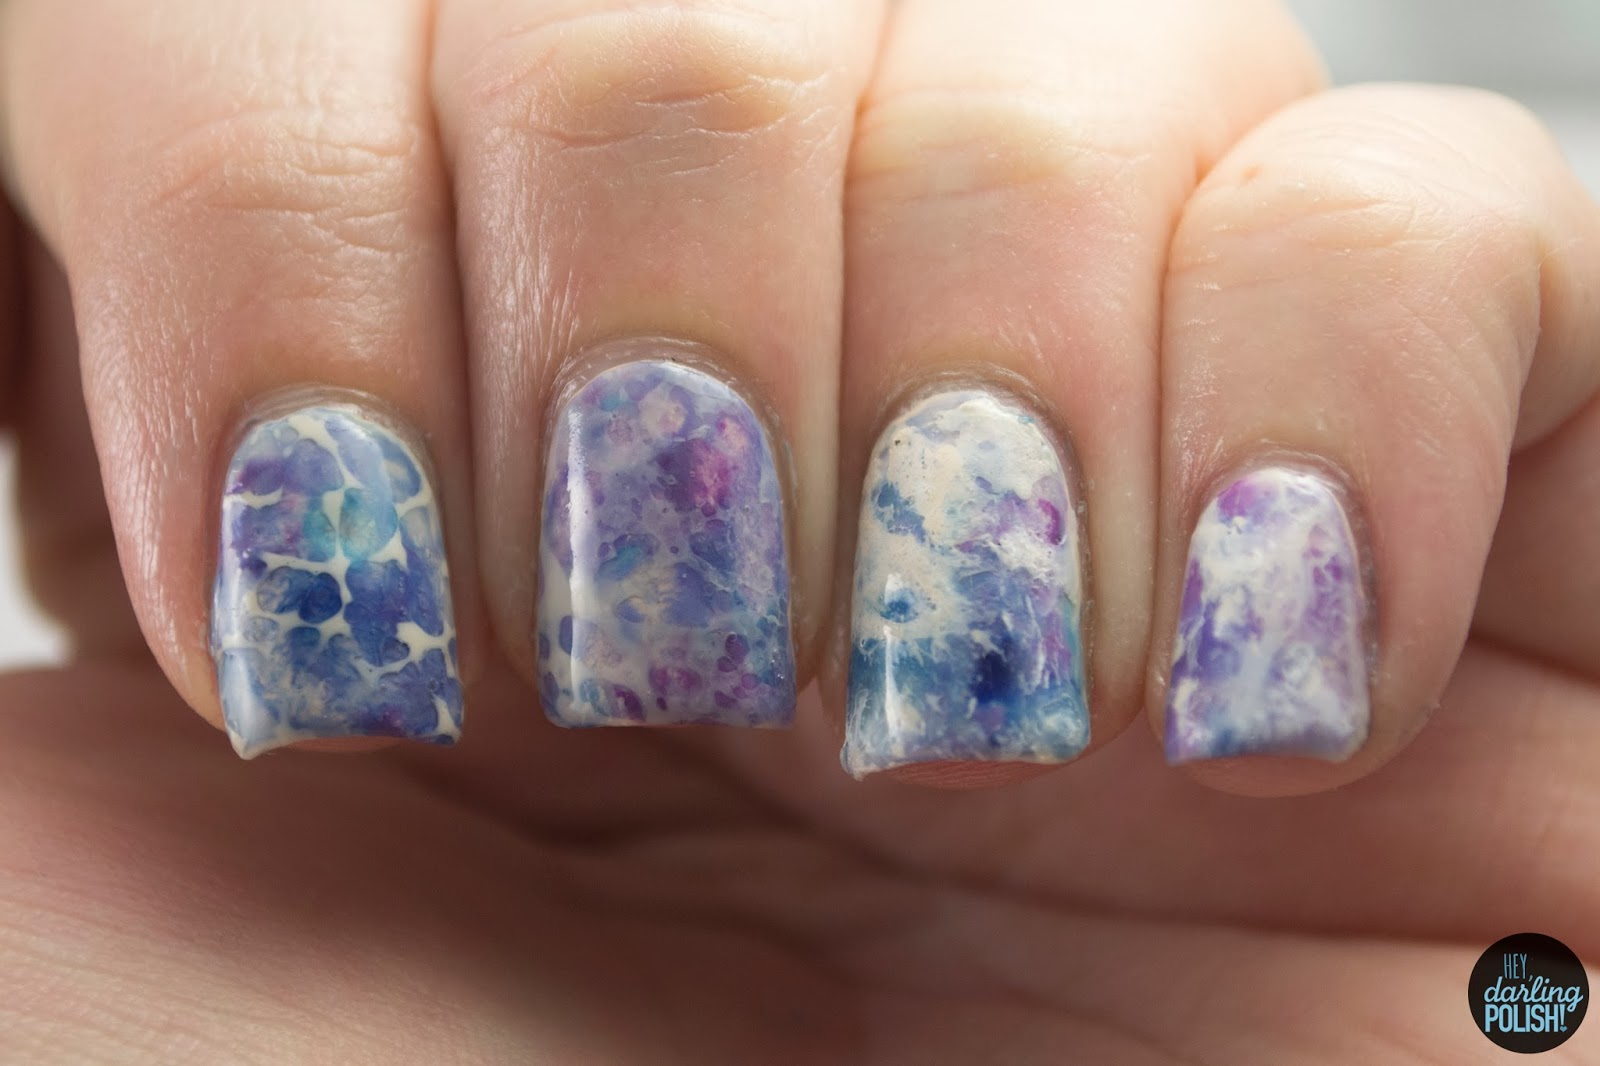 nails, nail polish, nail art, polish, watercolor, blue, purple, hey darling polish, nail art a go go